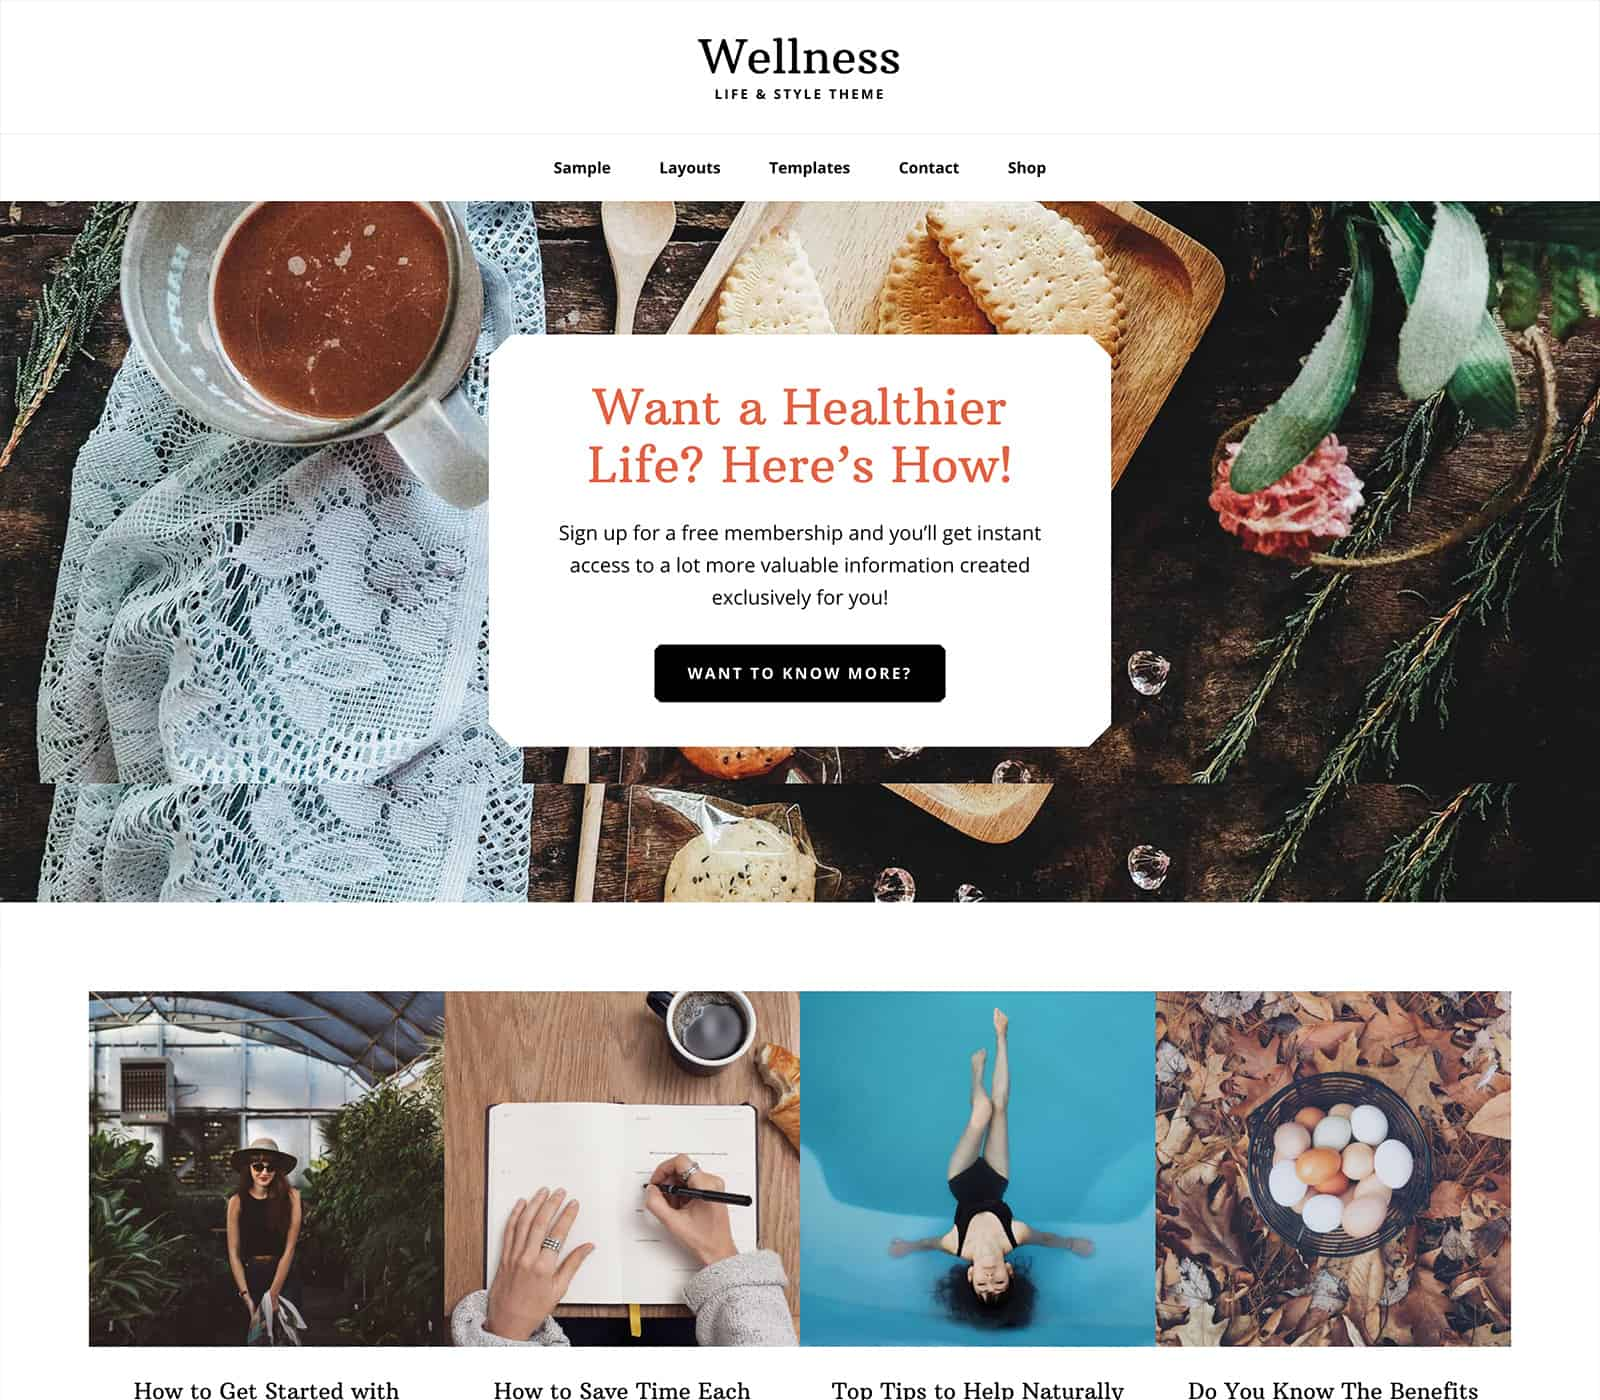 Wellness Pro theme by StudioPress for Yoga Studio Websites